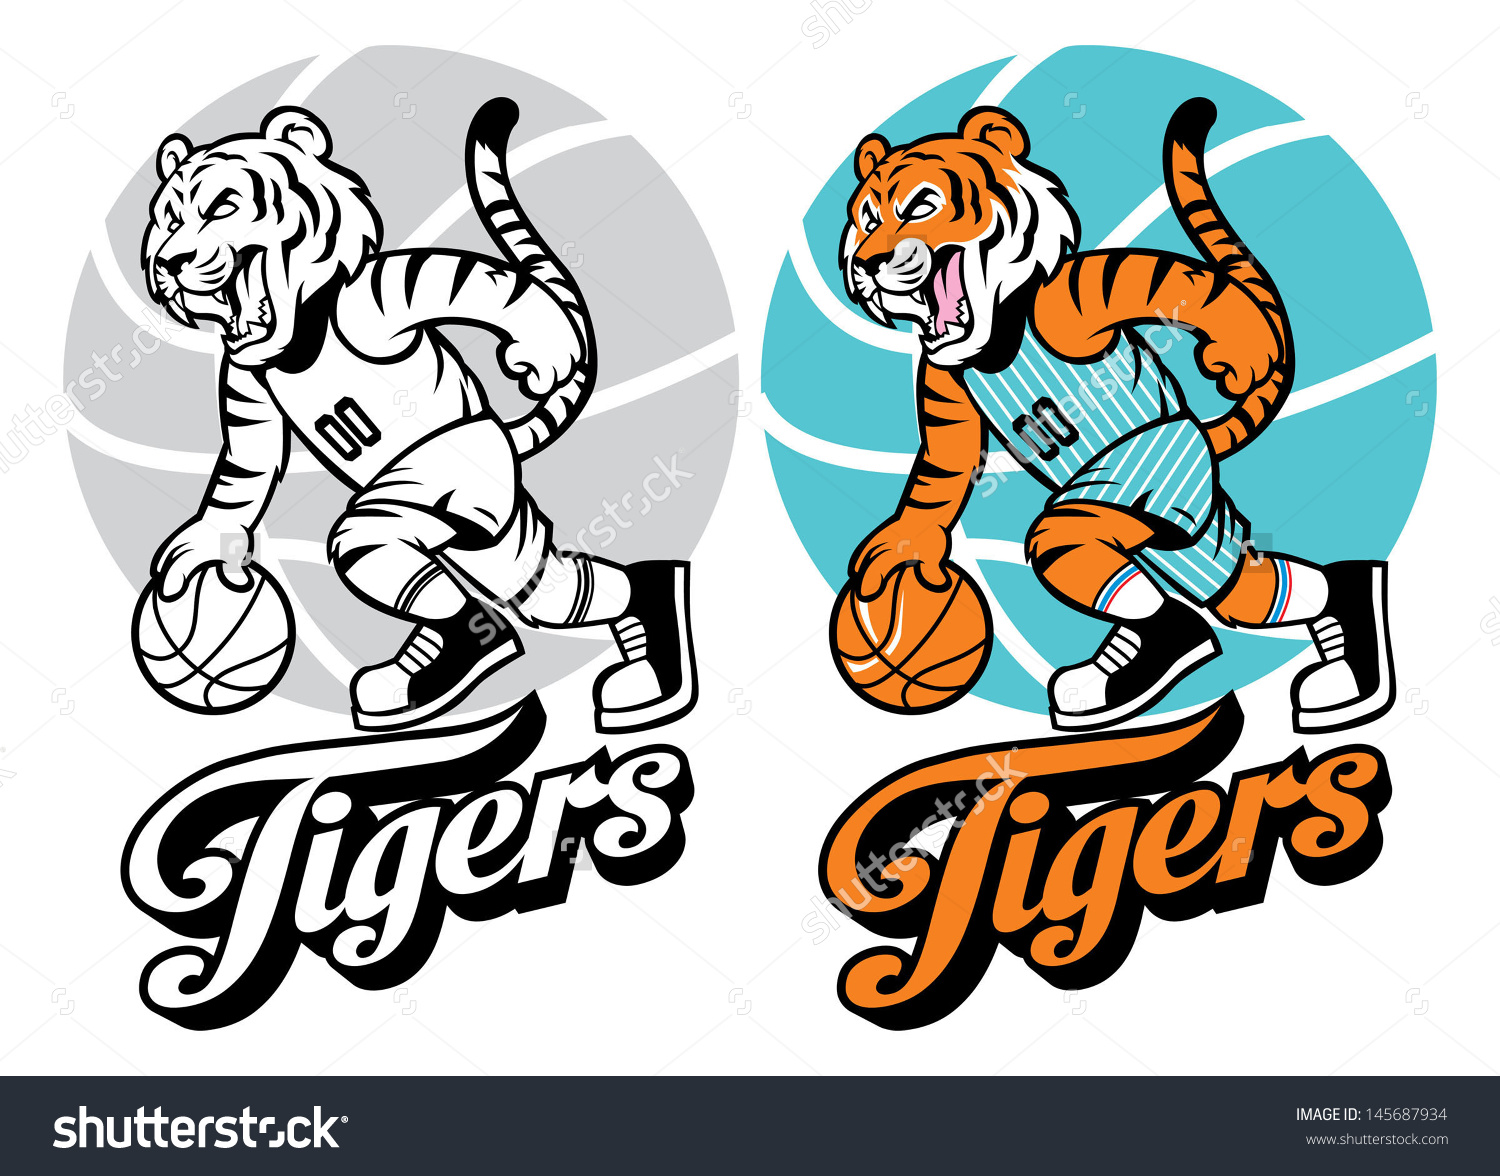 Tiger Basketball Mascot Stock Vector 145687934.